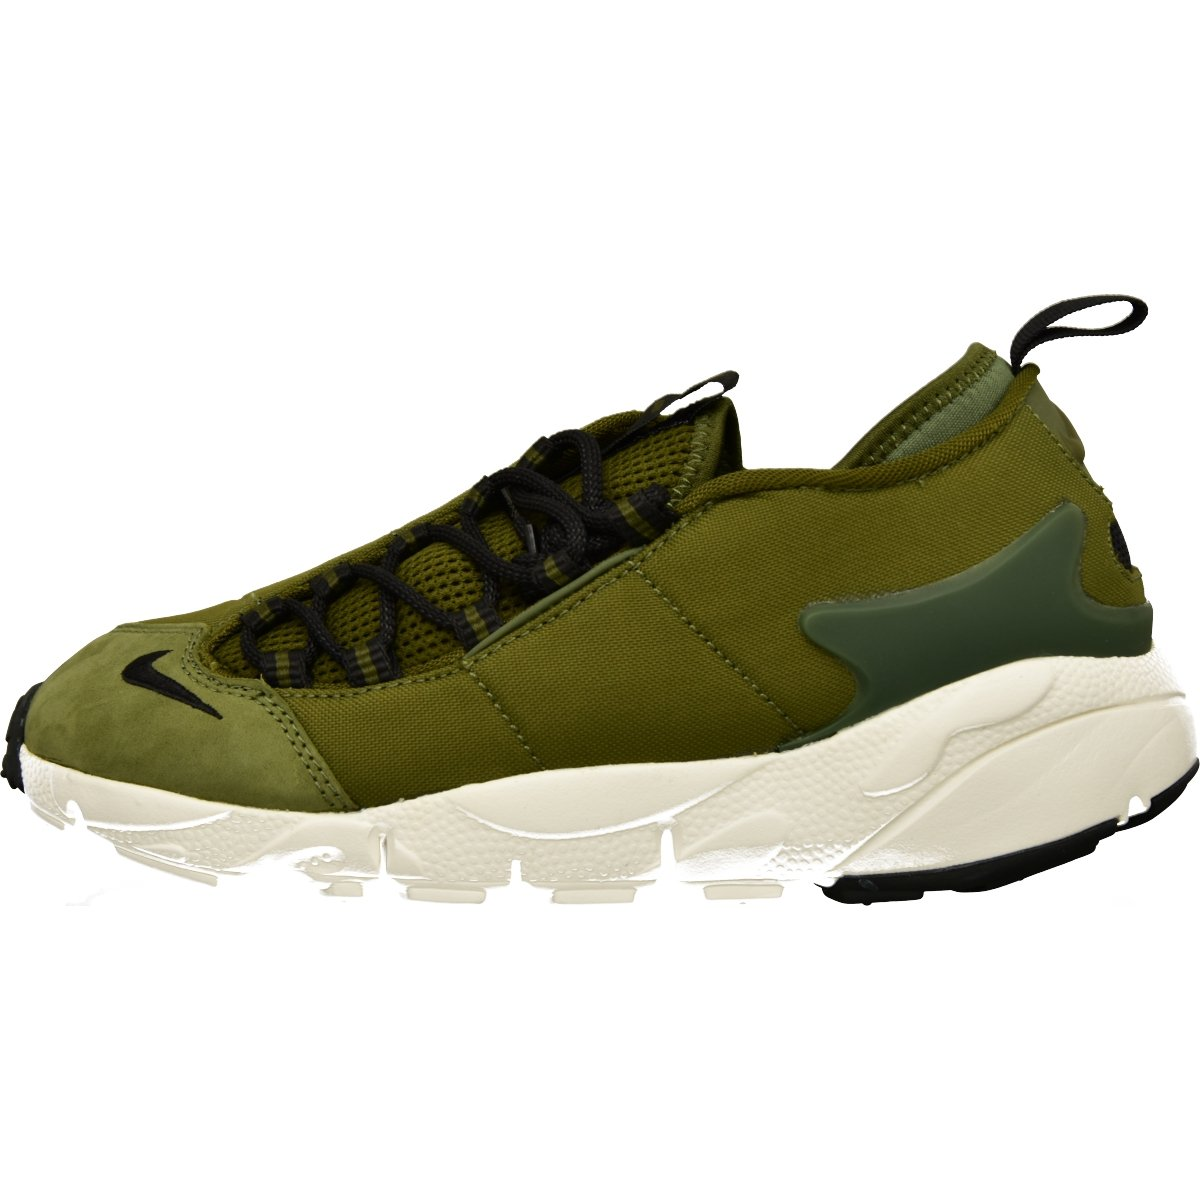 super popular a03ad d938f Nike Men Air Footscape Nm (Legion Green Black-Summit White-Black) Size 8. 0  US  Buy Online at Low Prices in India - Amazon.in